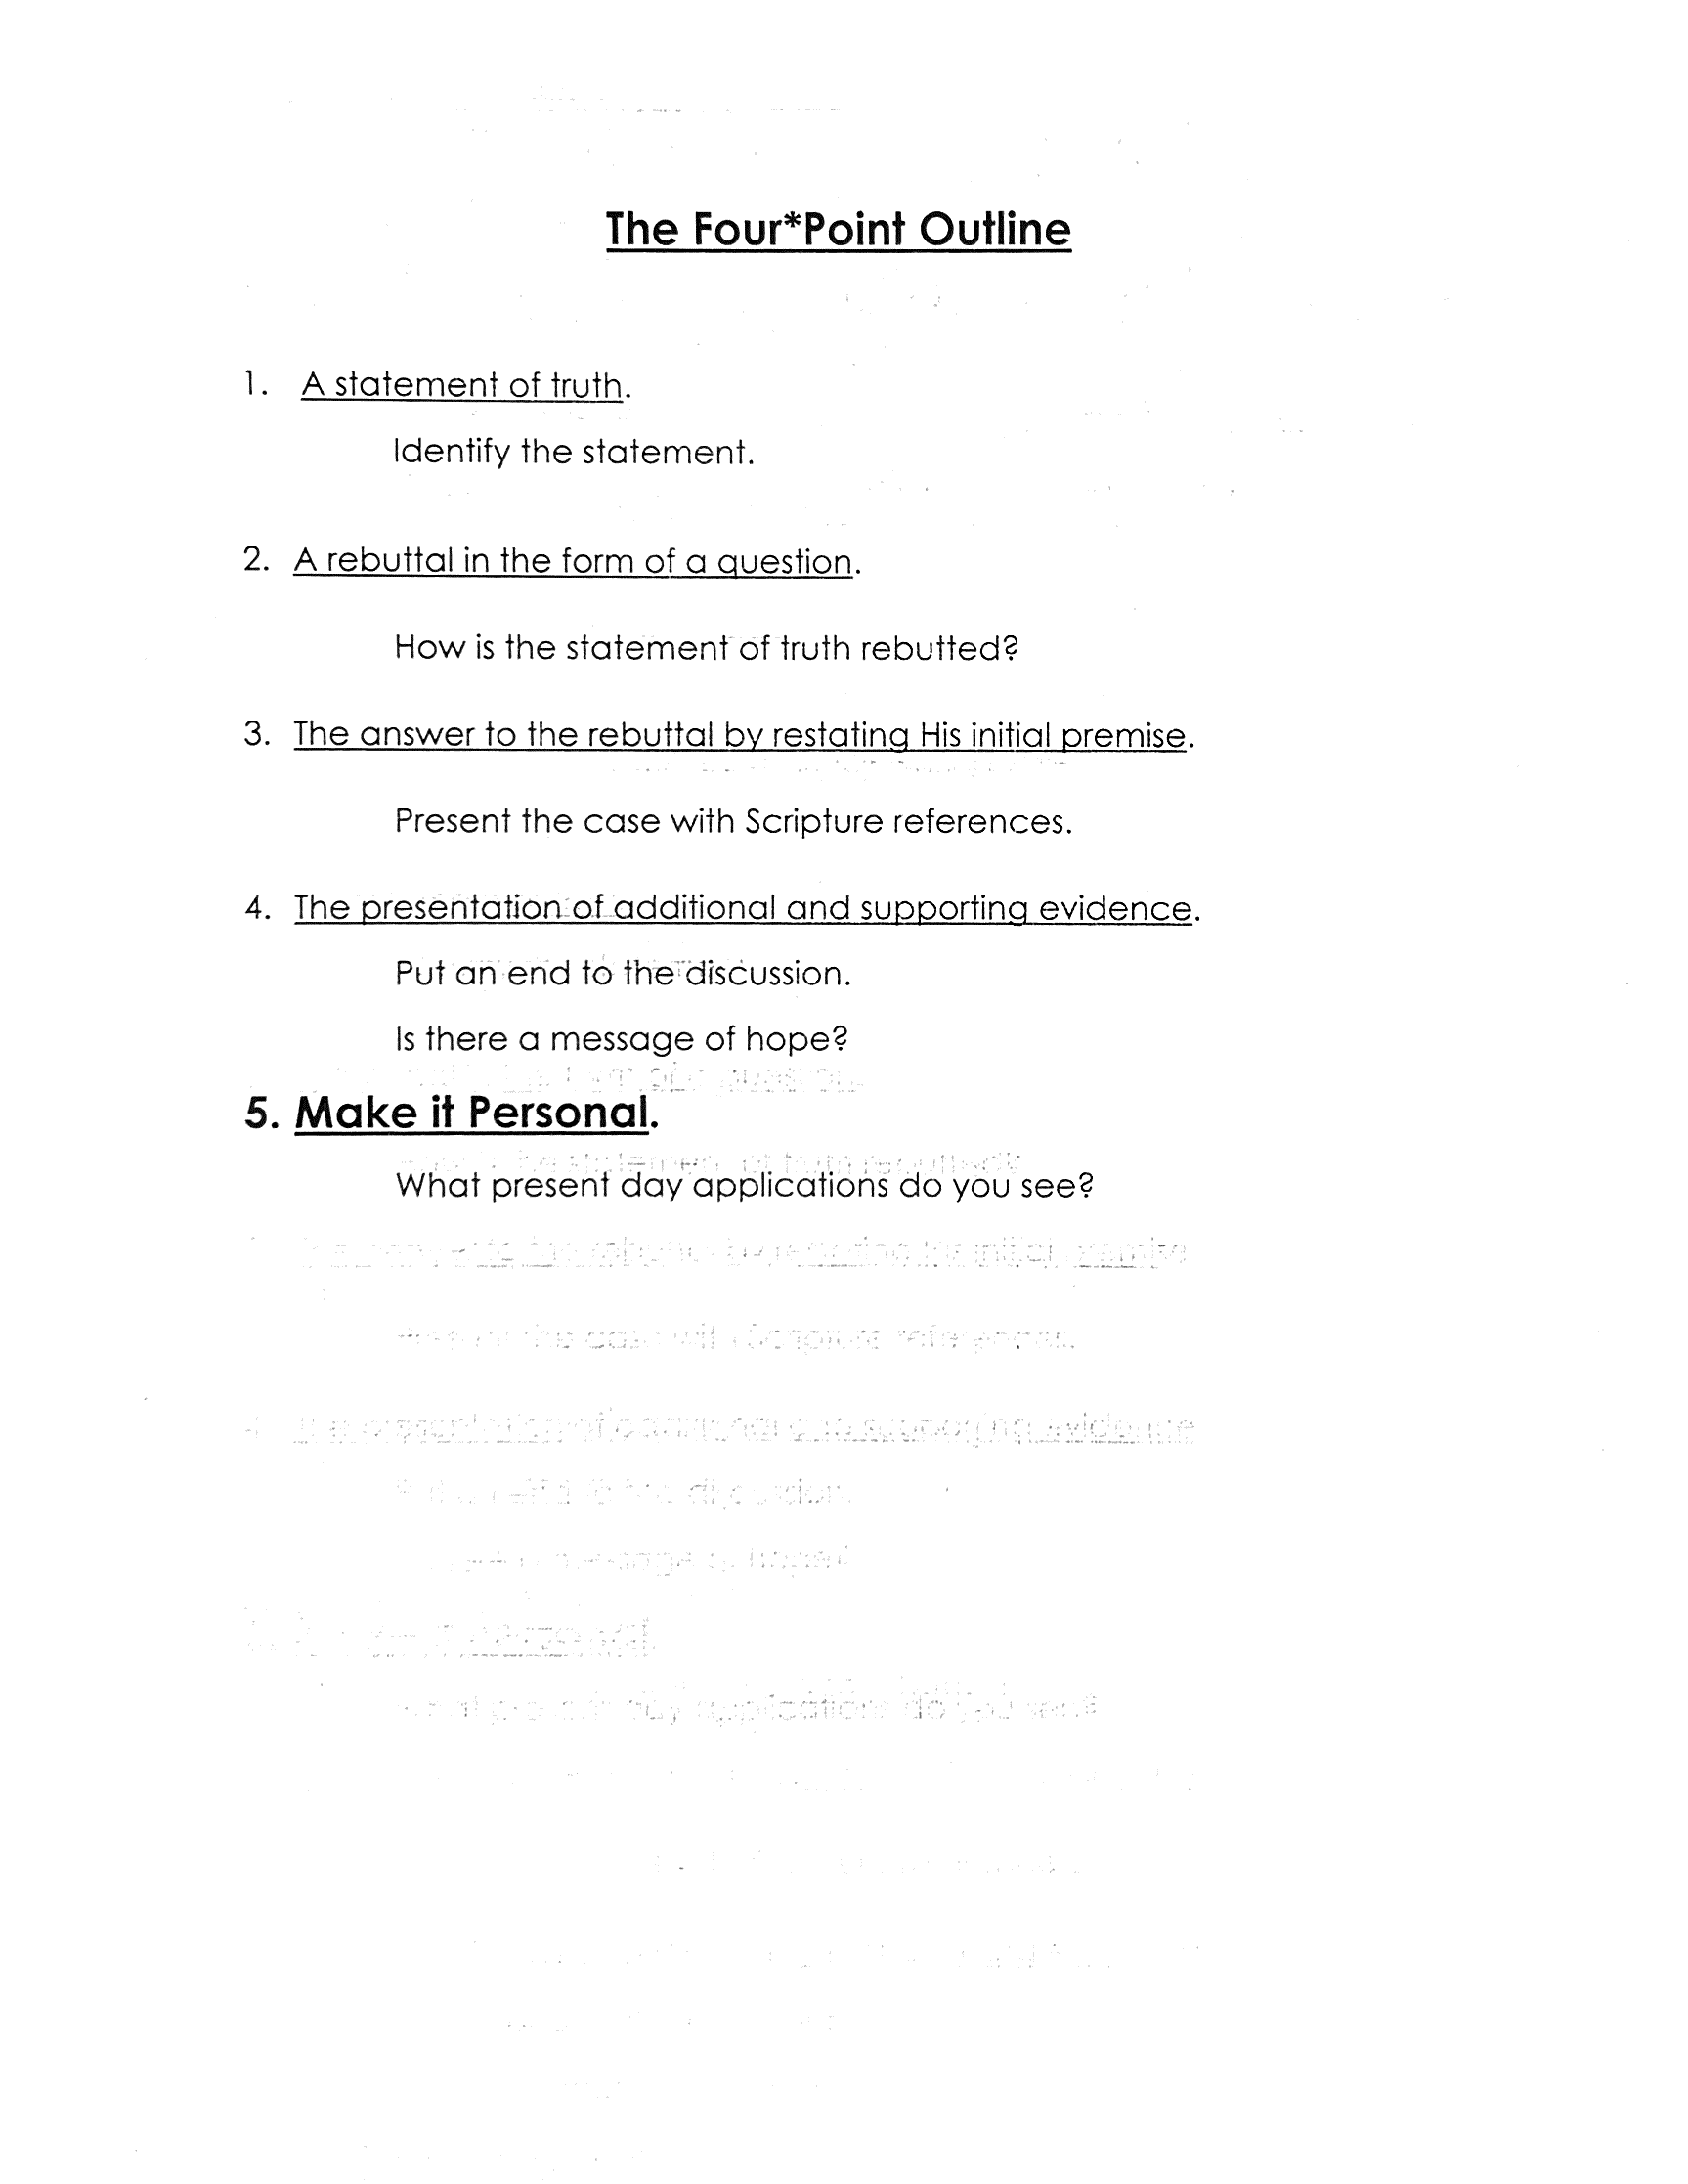 Scannable Document 2 on Feb 12, 2019 at 10_35_27 AM.PNG